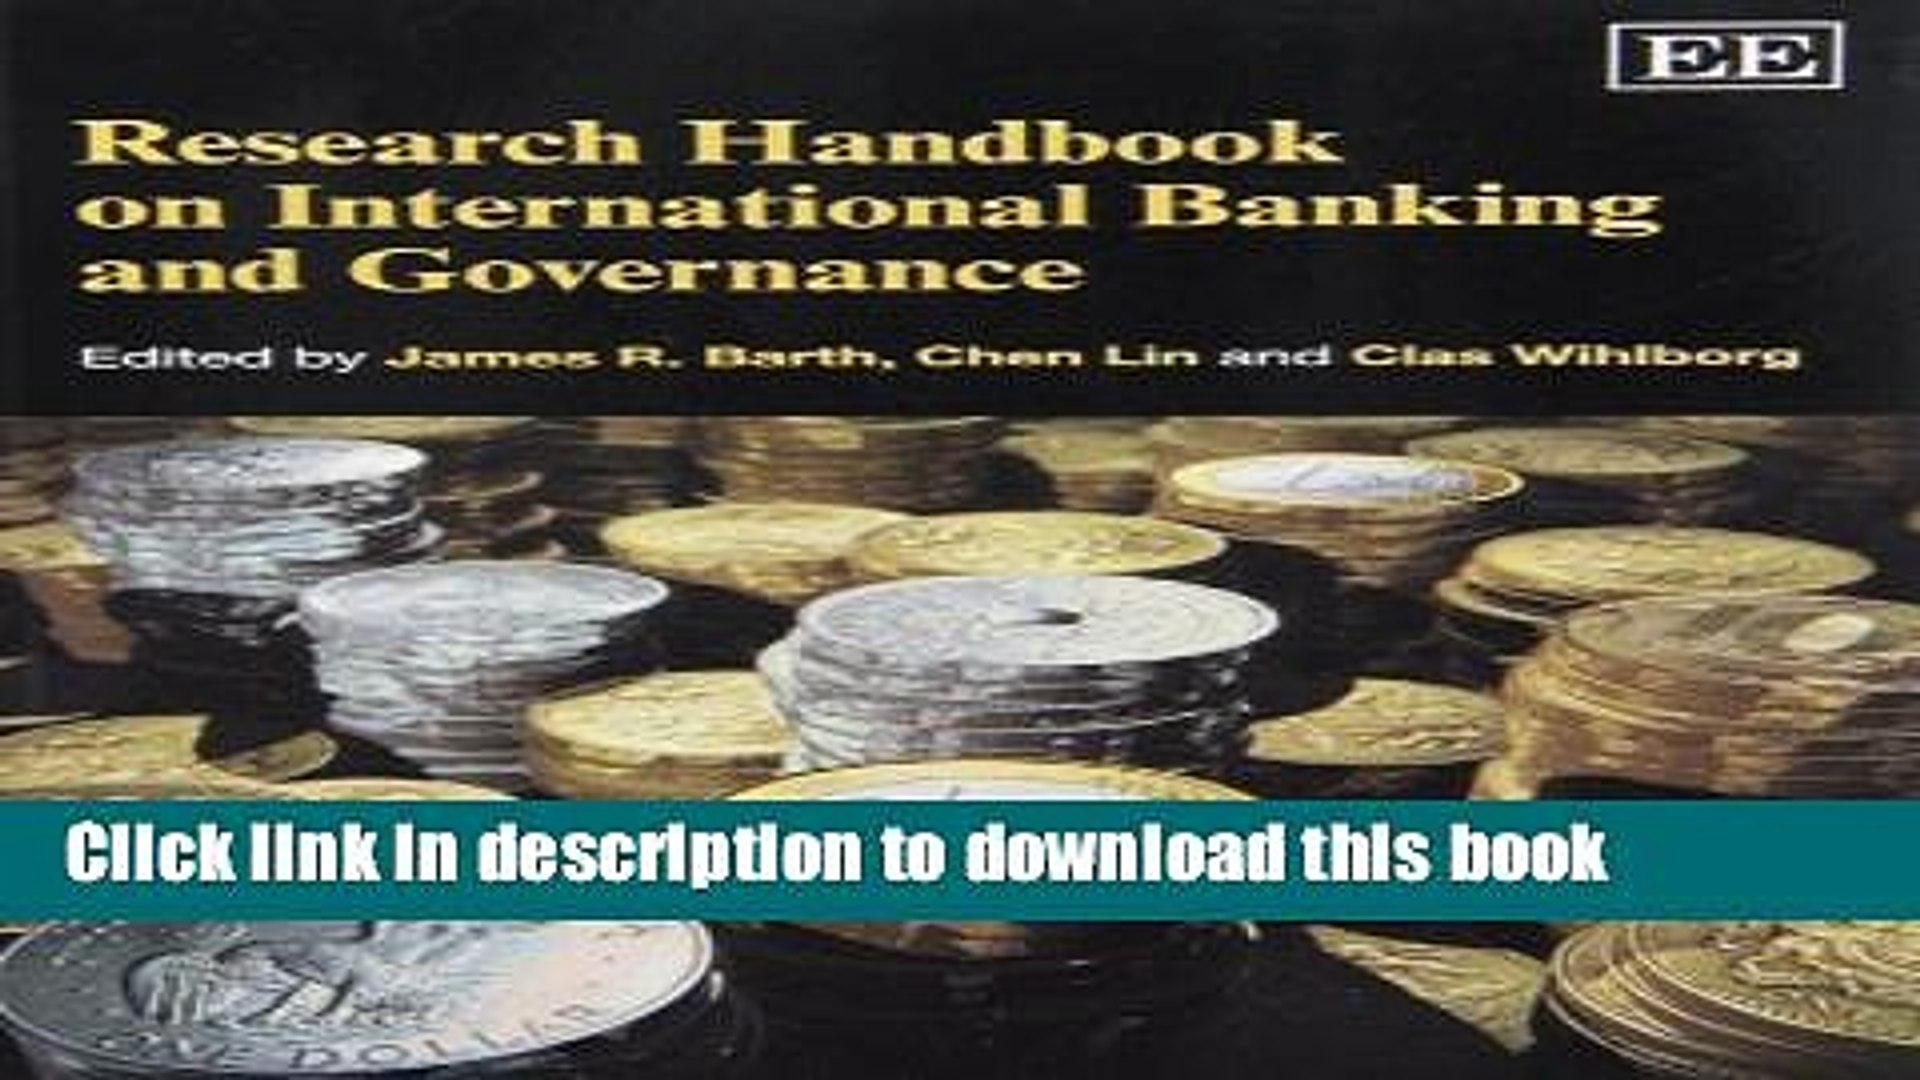 [Popular] Research Handbook on International Banking and Governance Paperback Online